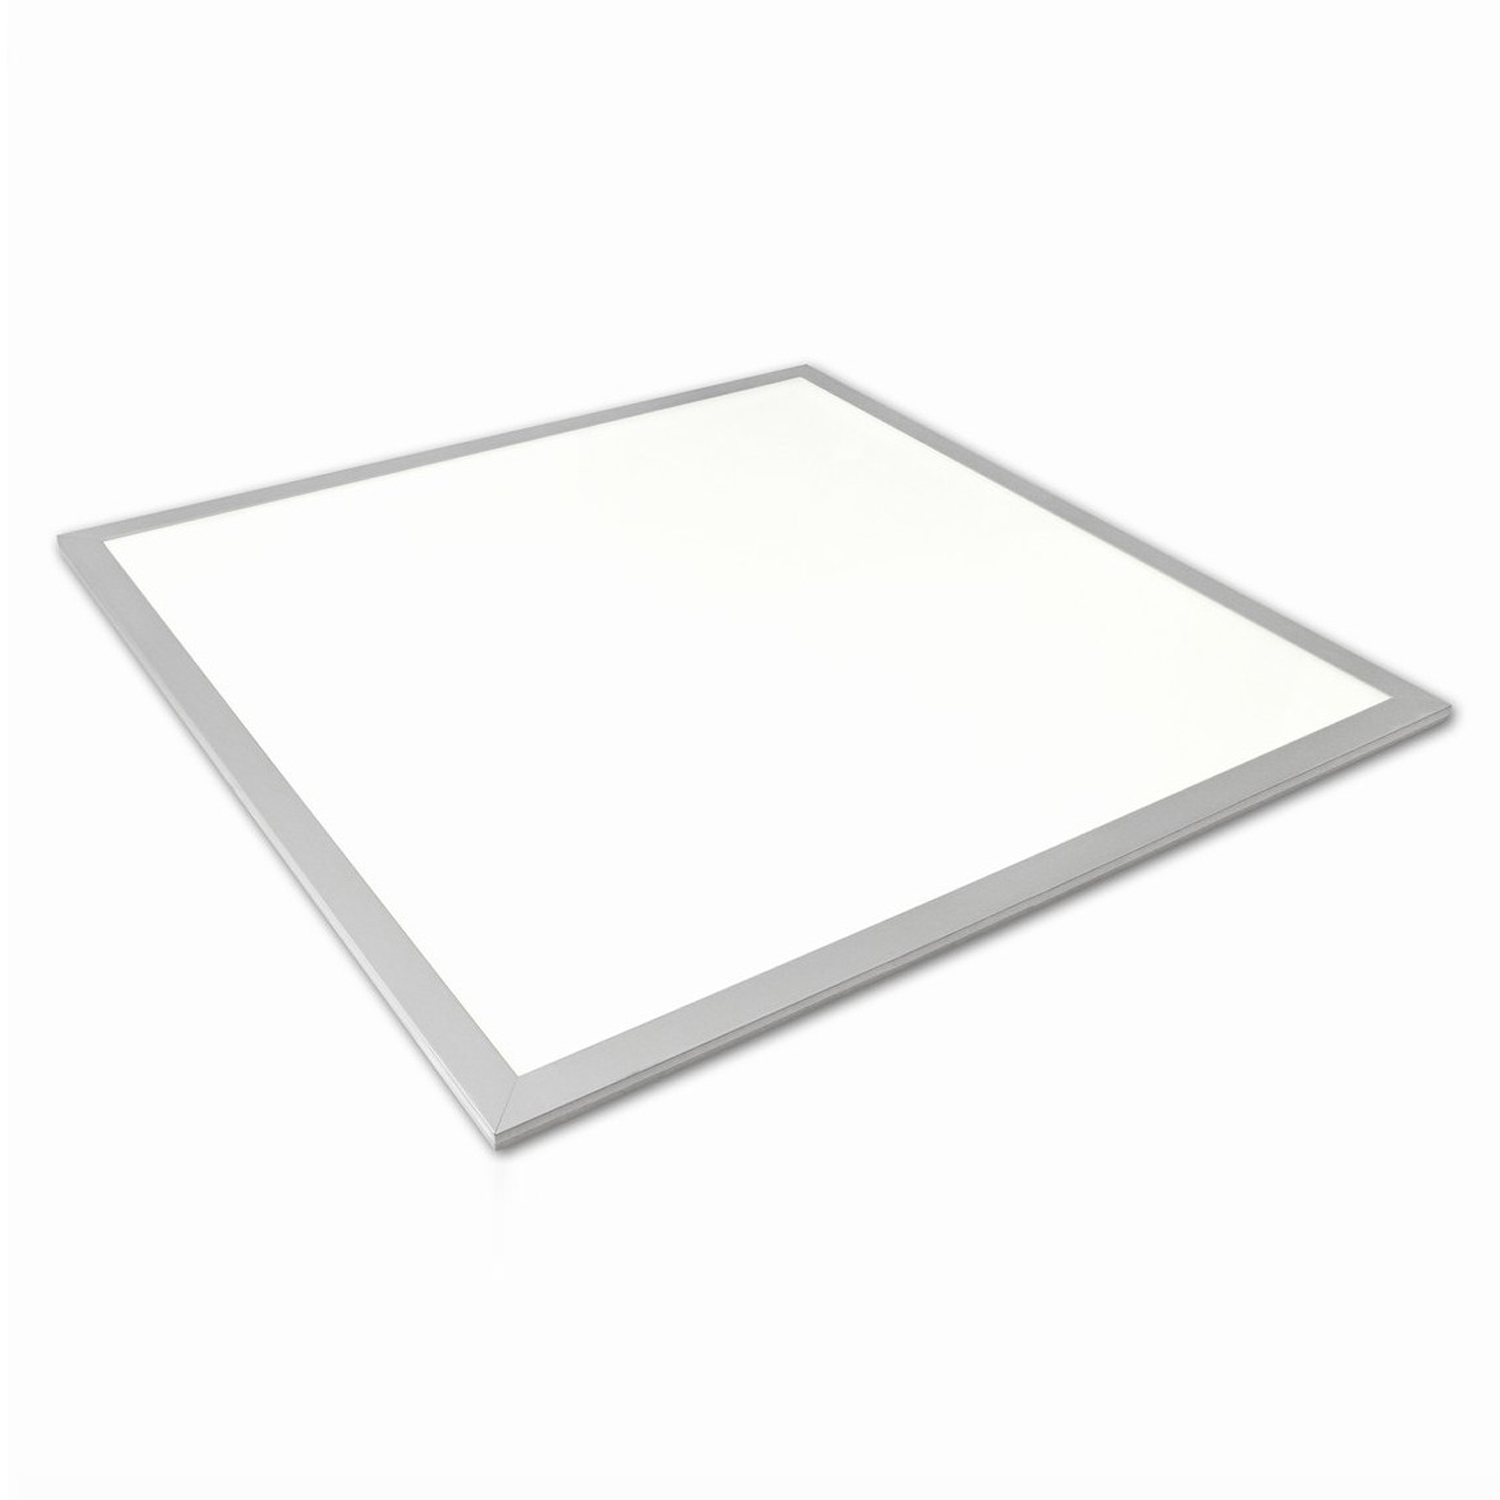 Led Panel Light 2x2 01 02 Home Commercial